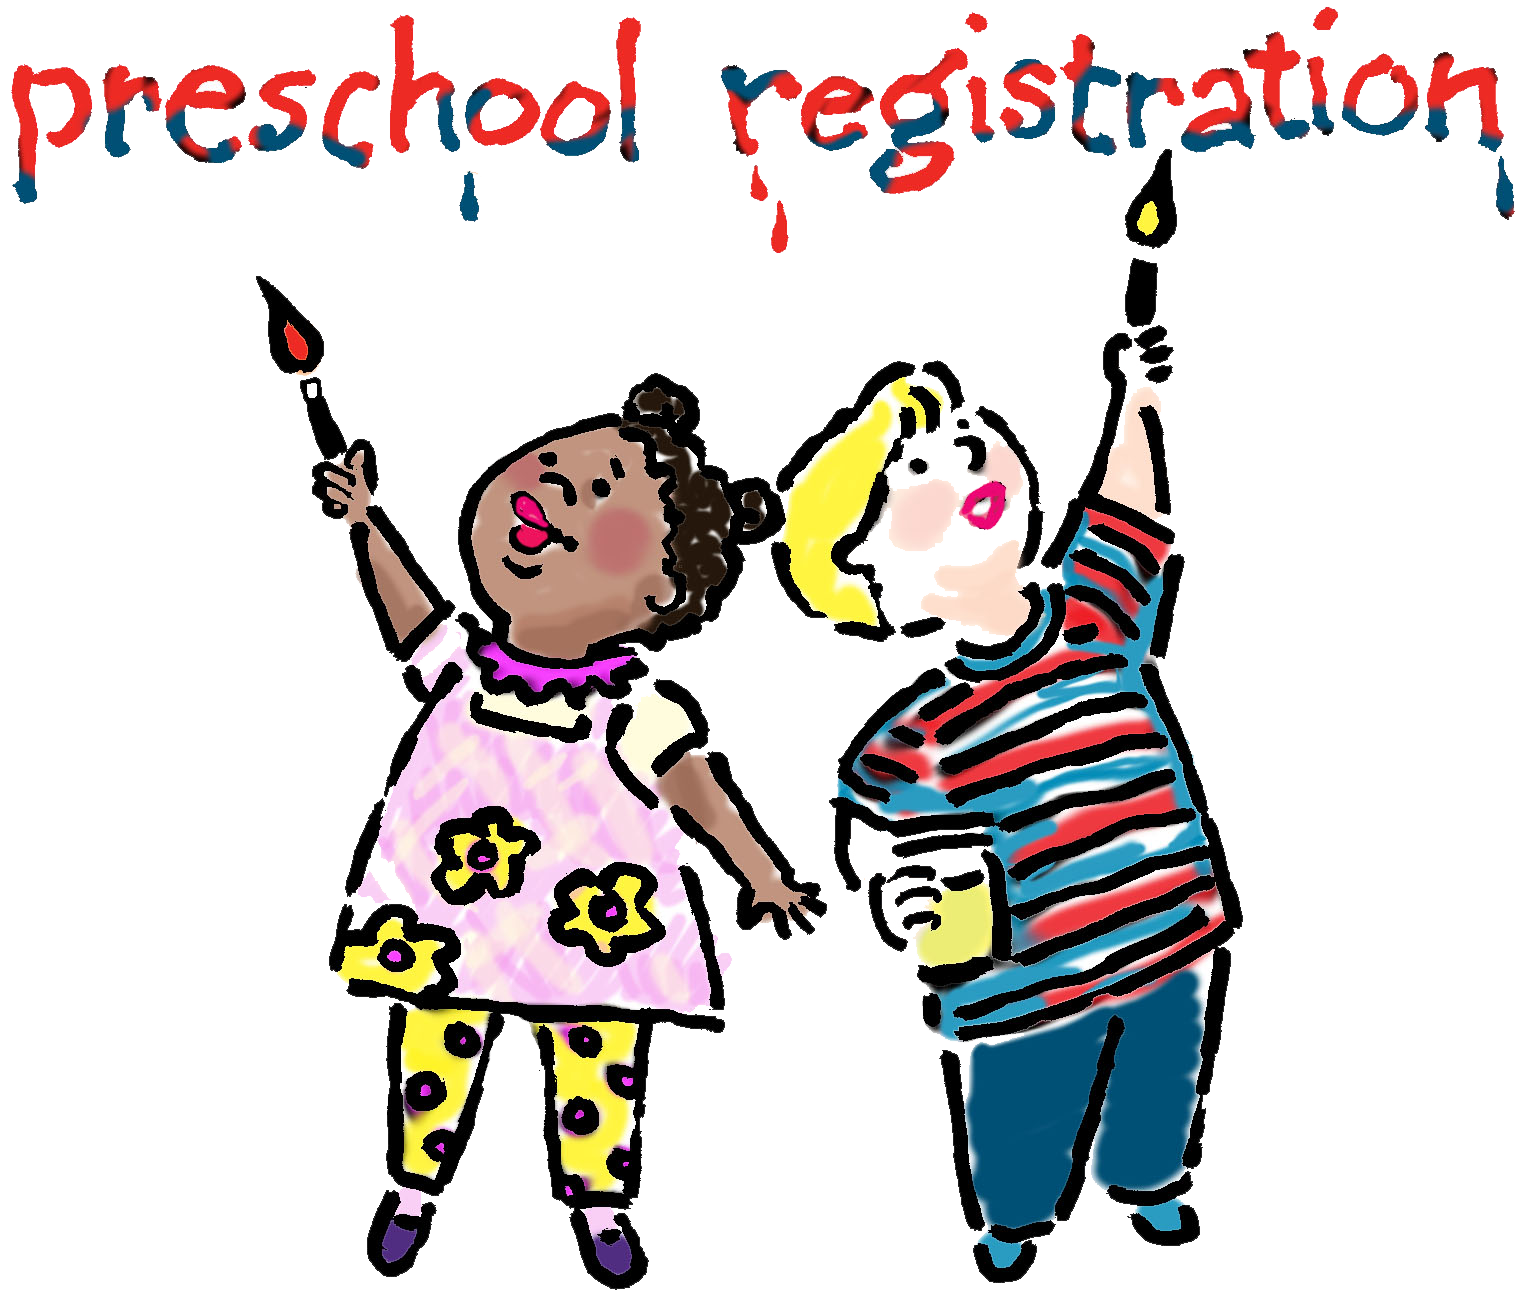 Voting clipart kid. Elc preschool registration early